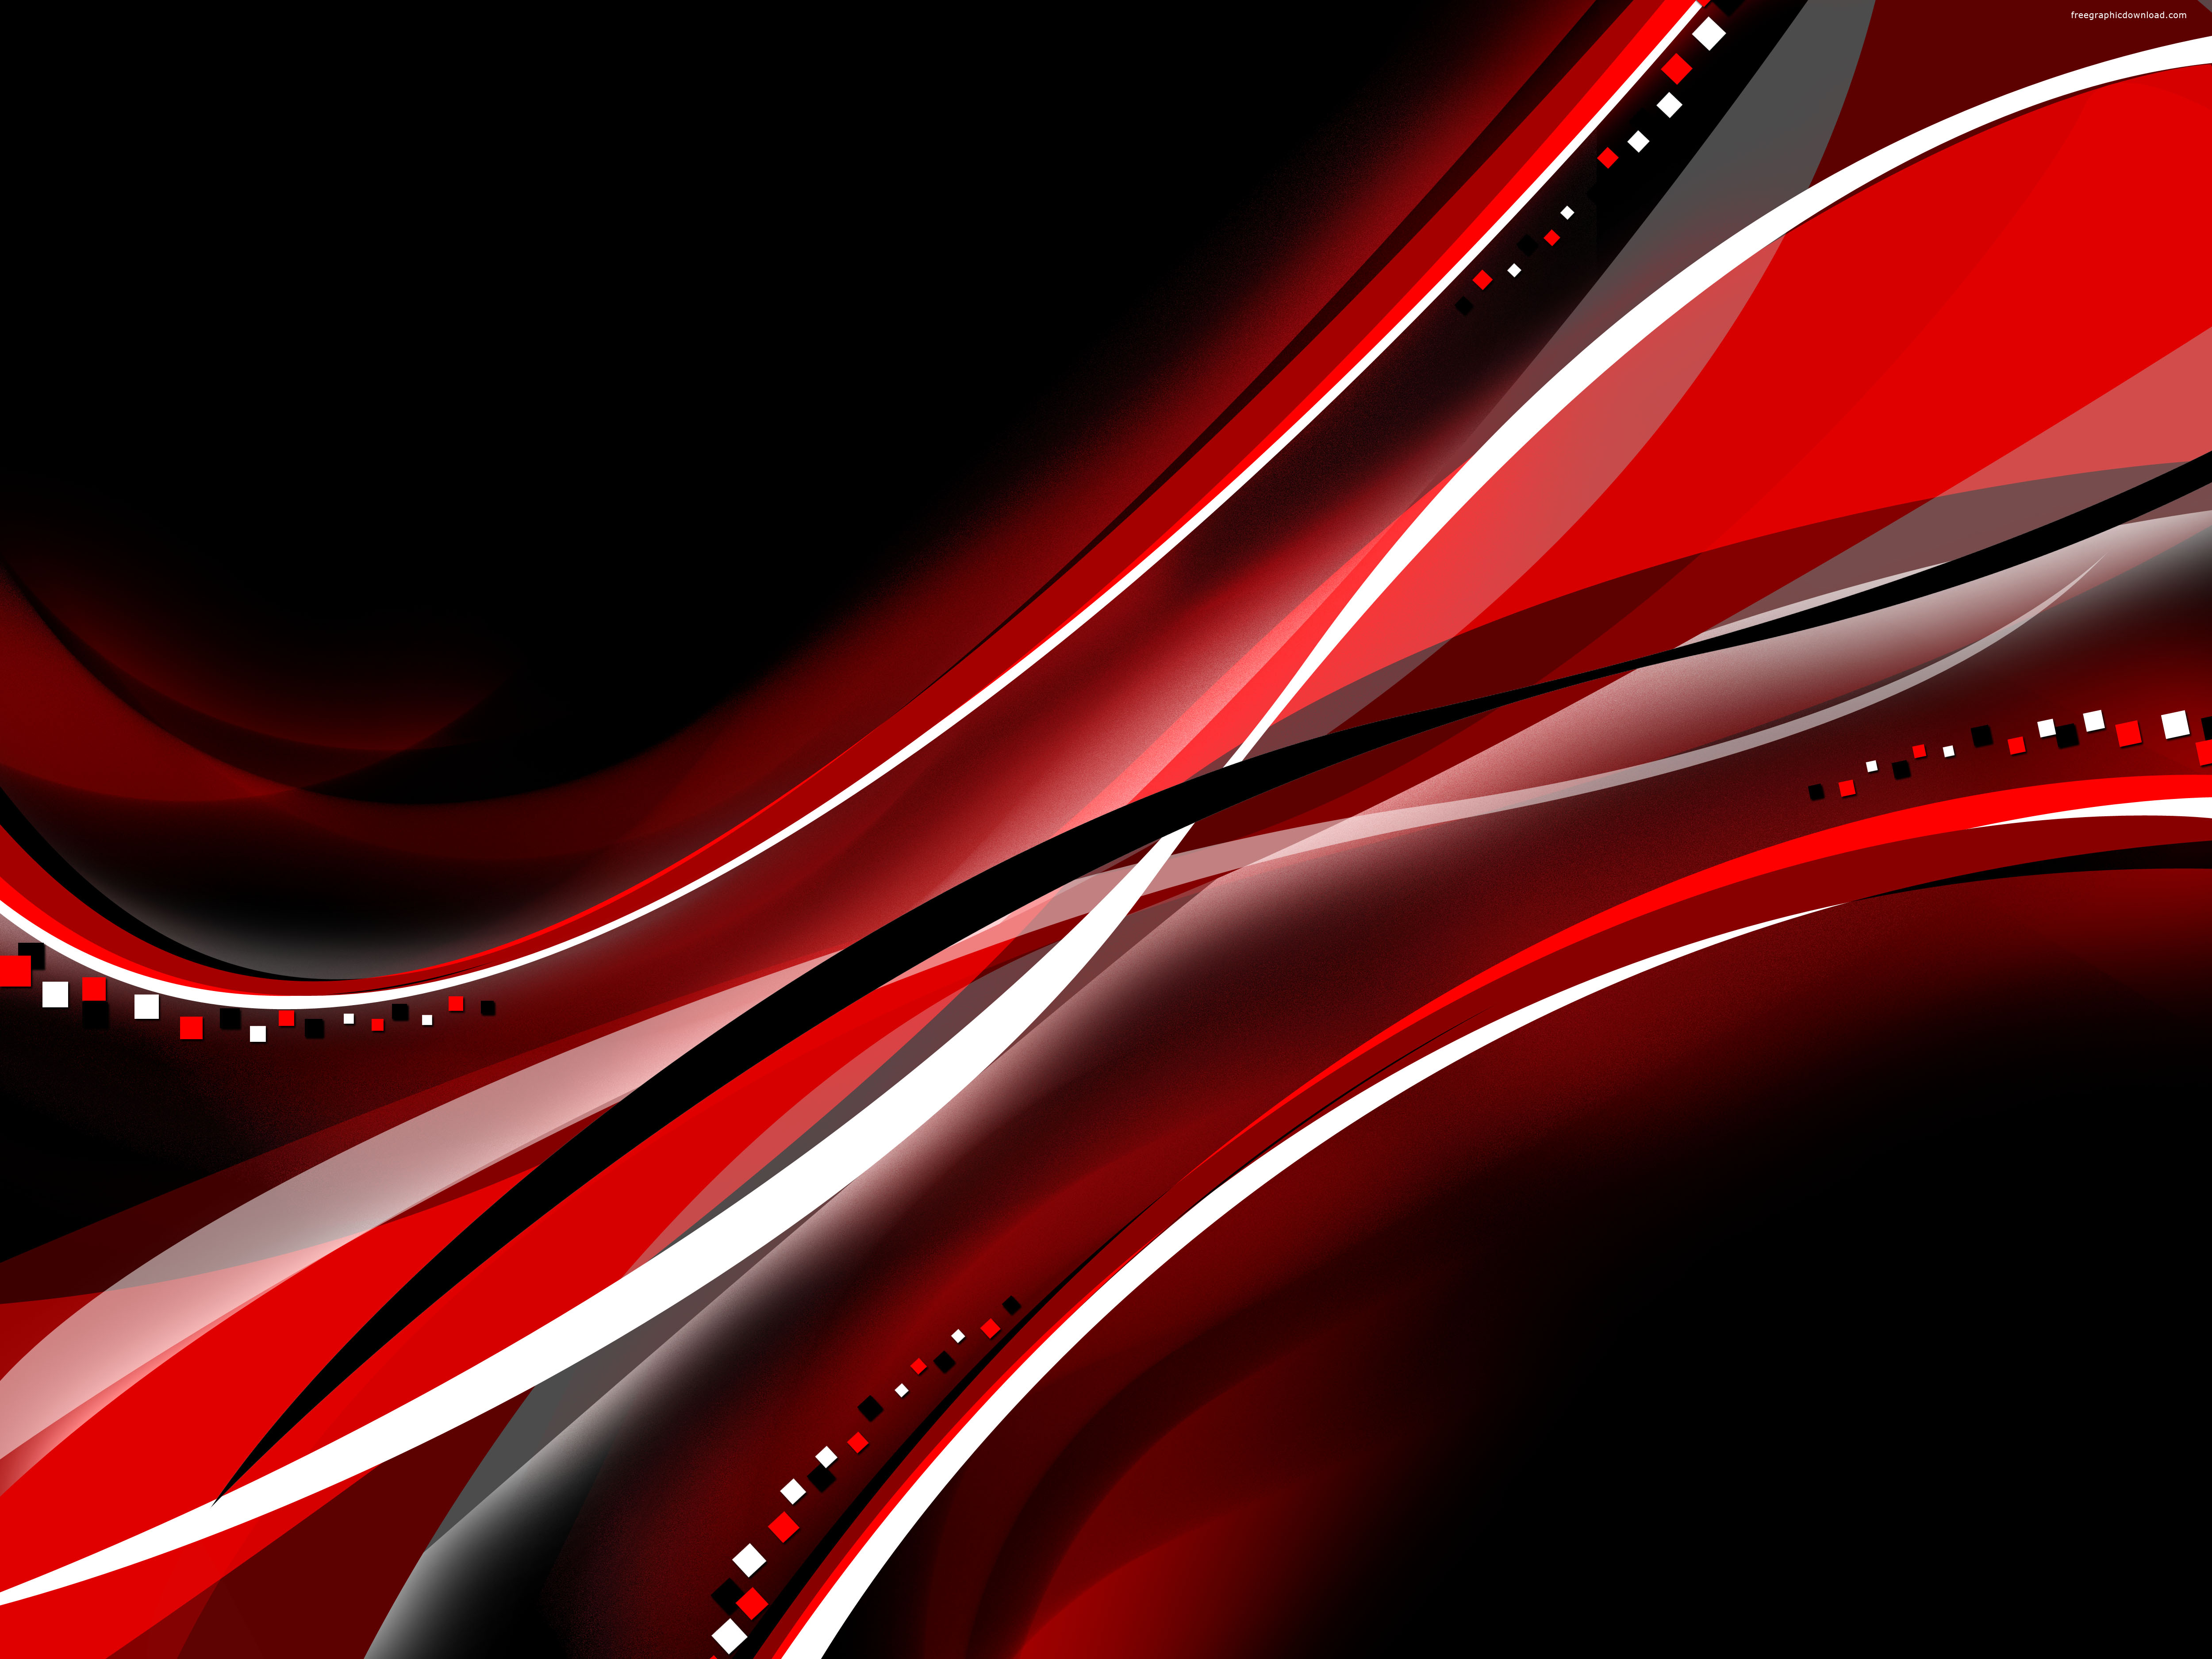 Free HD Black And Red Wallpapers  PixelsTalkNet